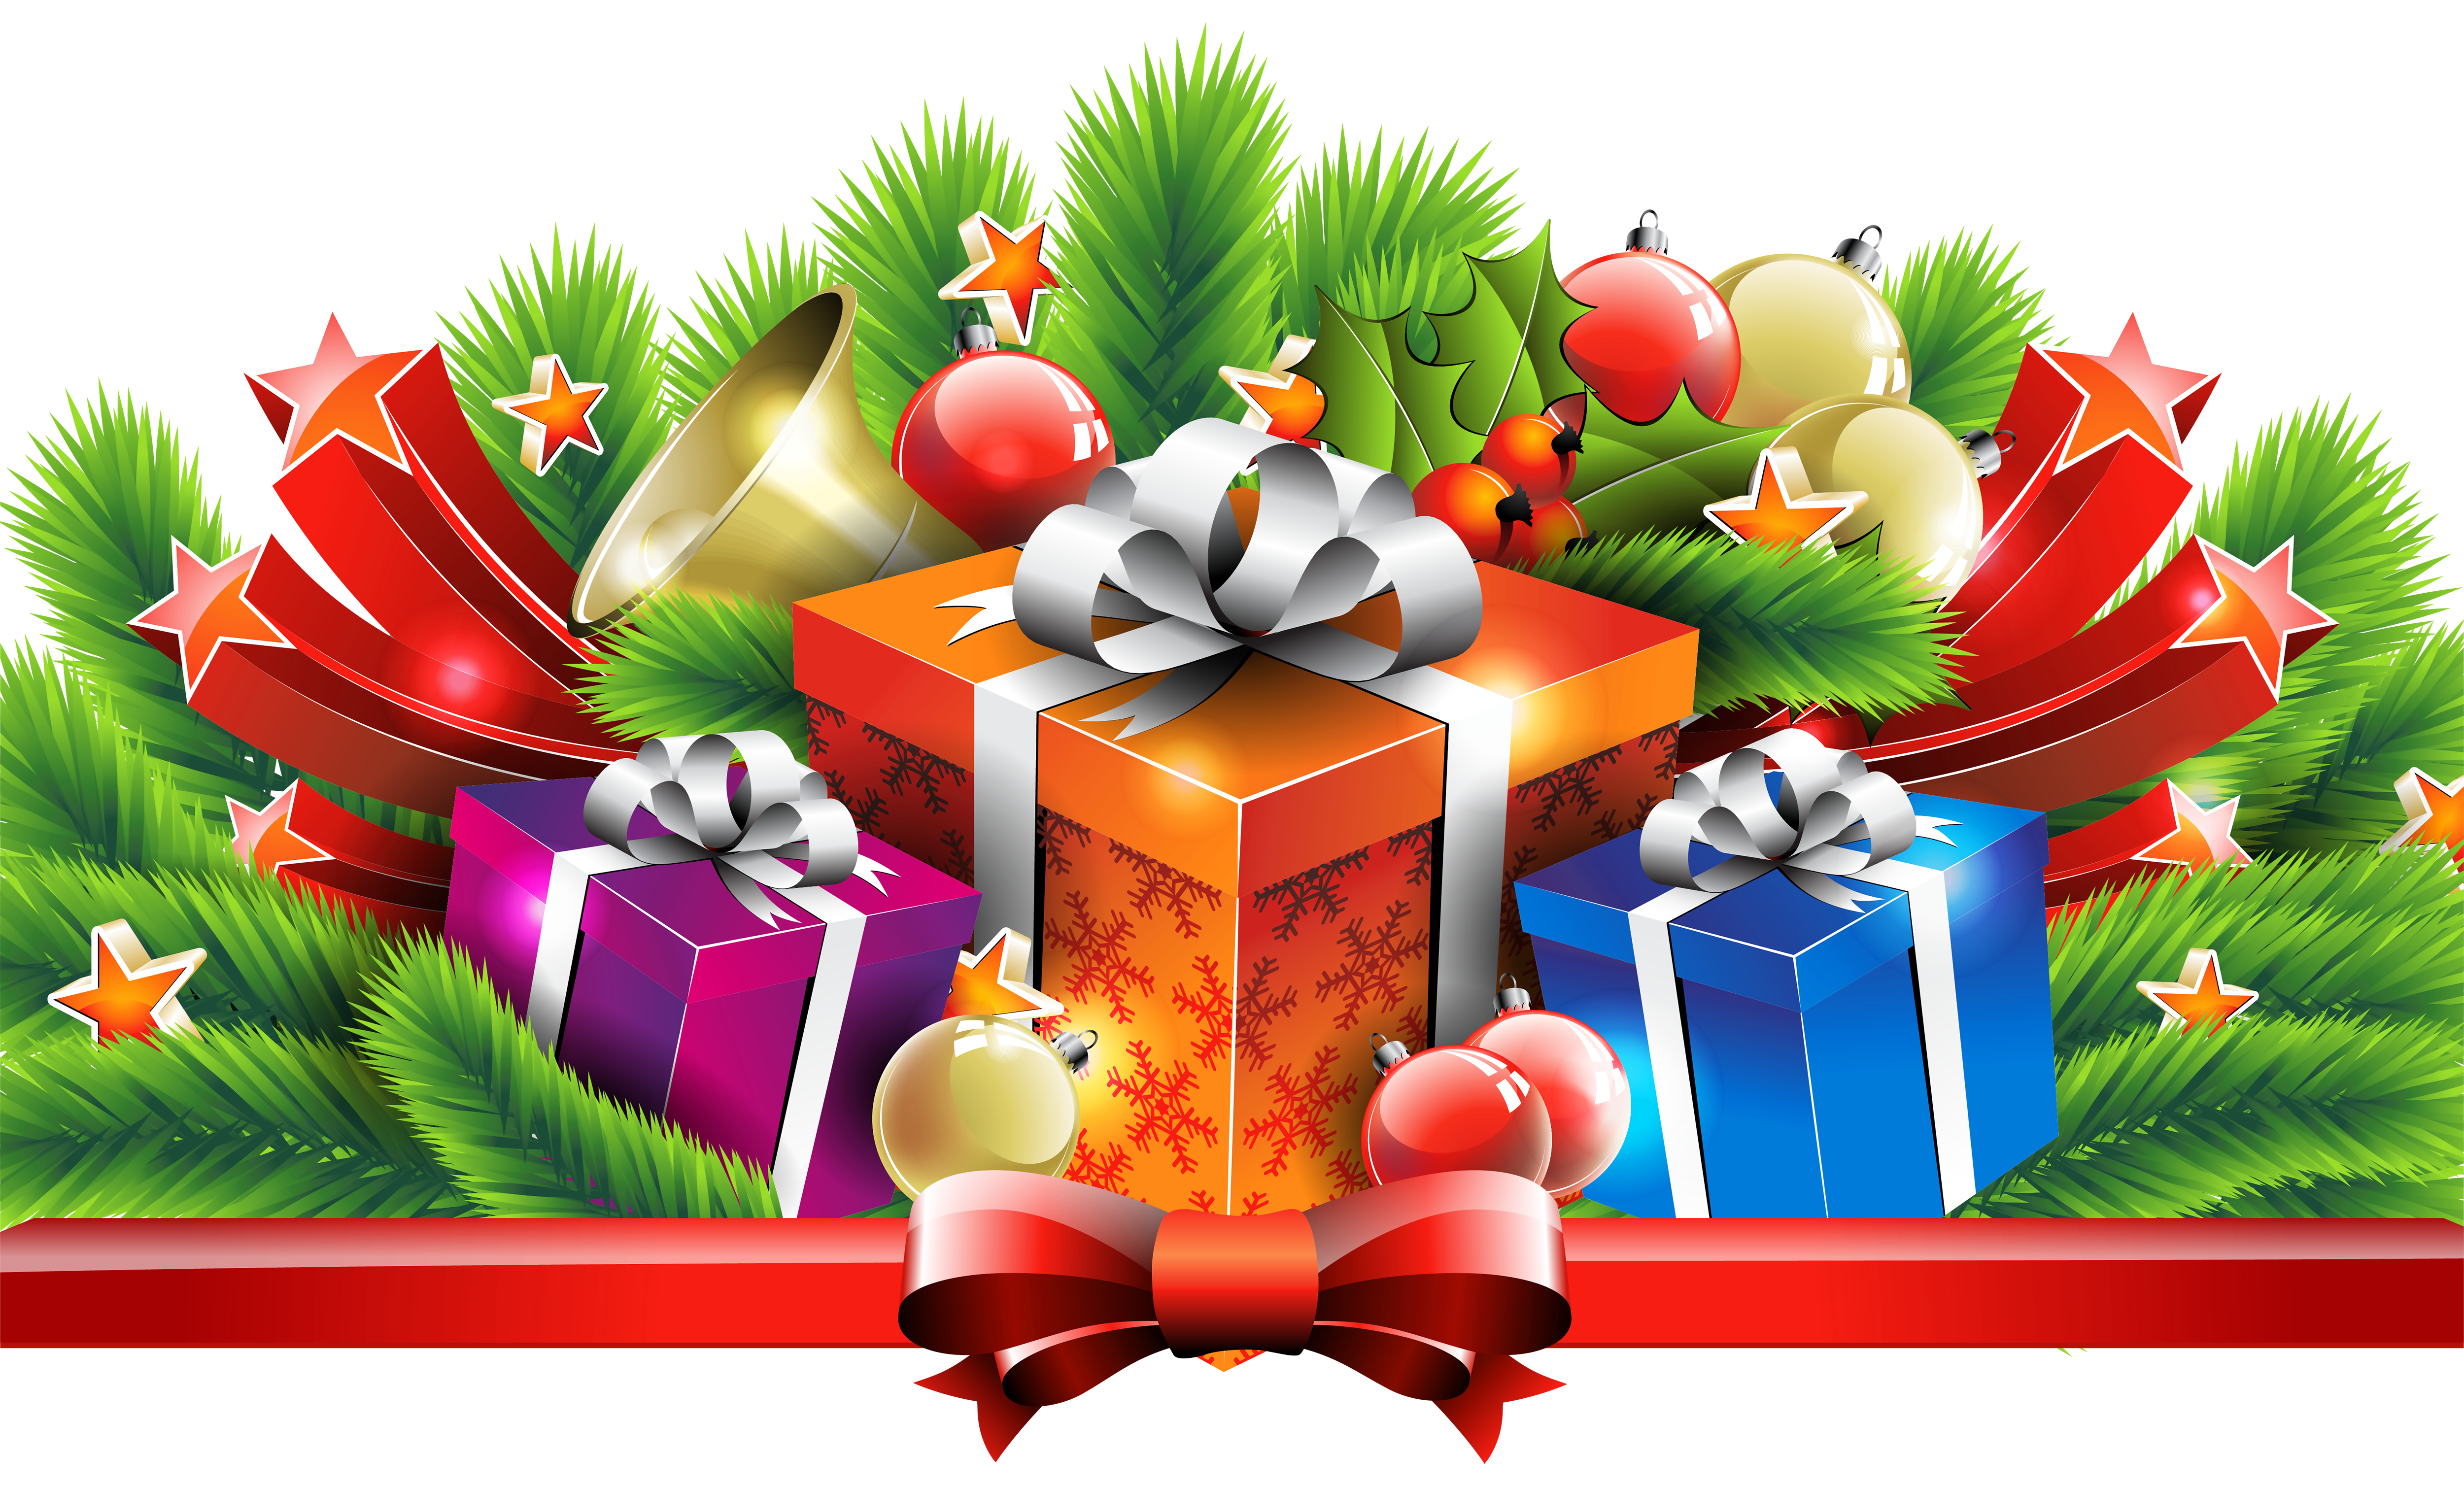 Win clipart christmas. Presents interesting ideas gifts